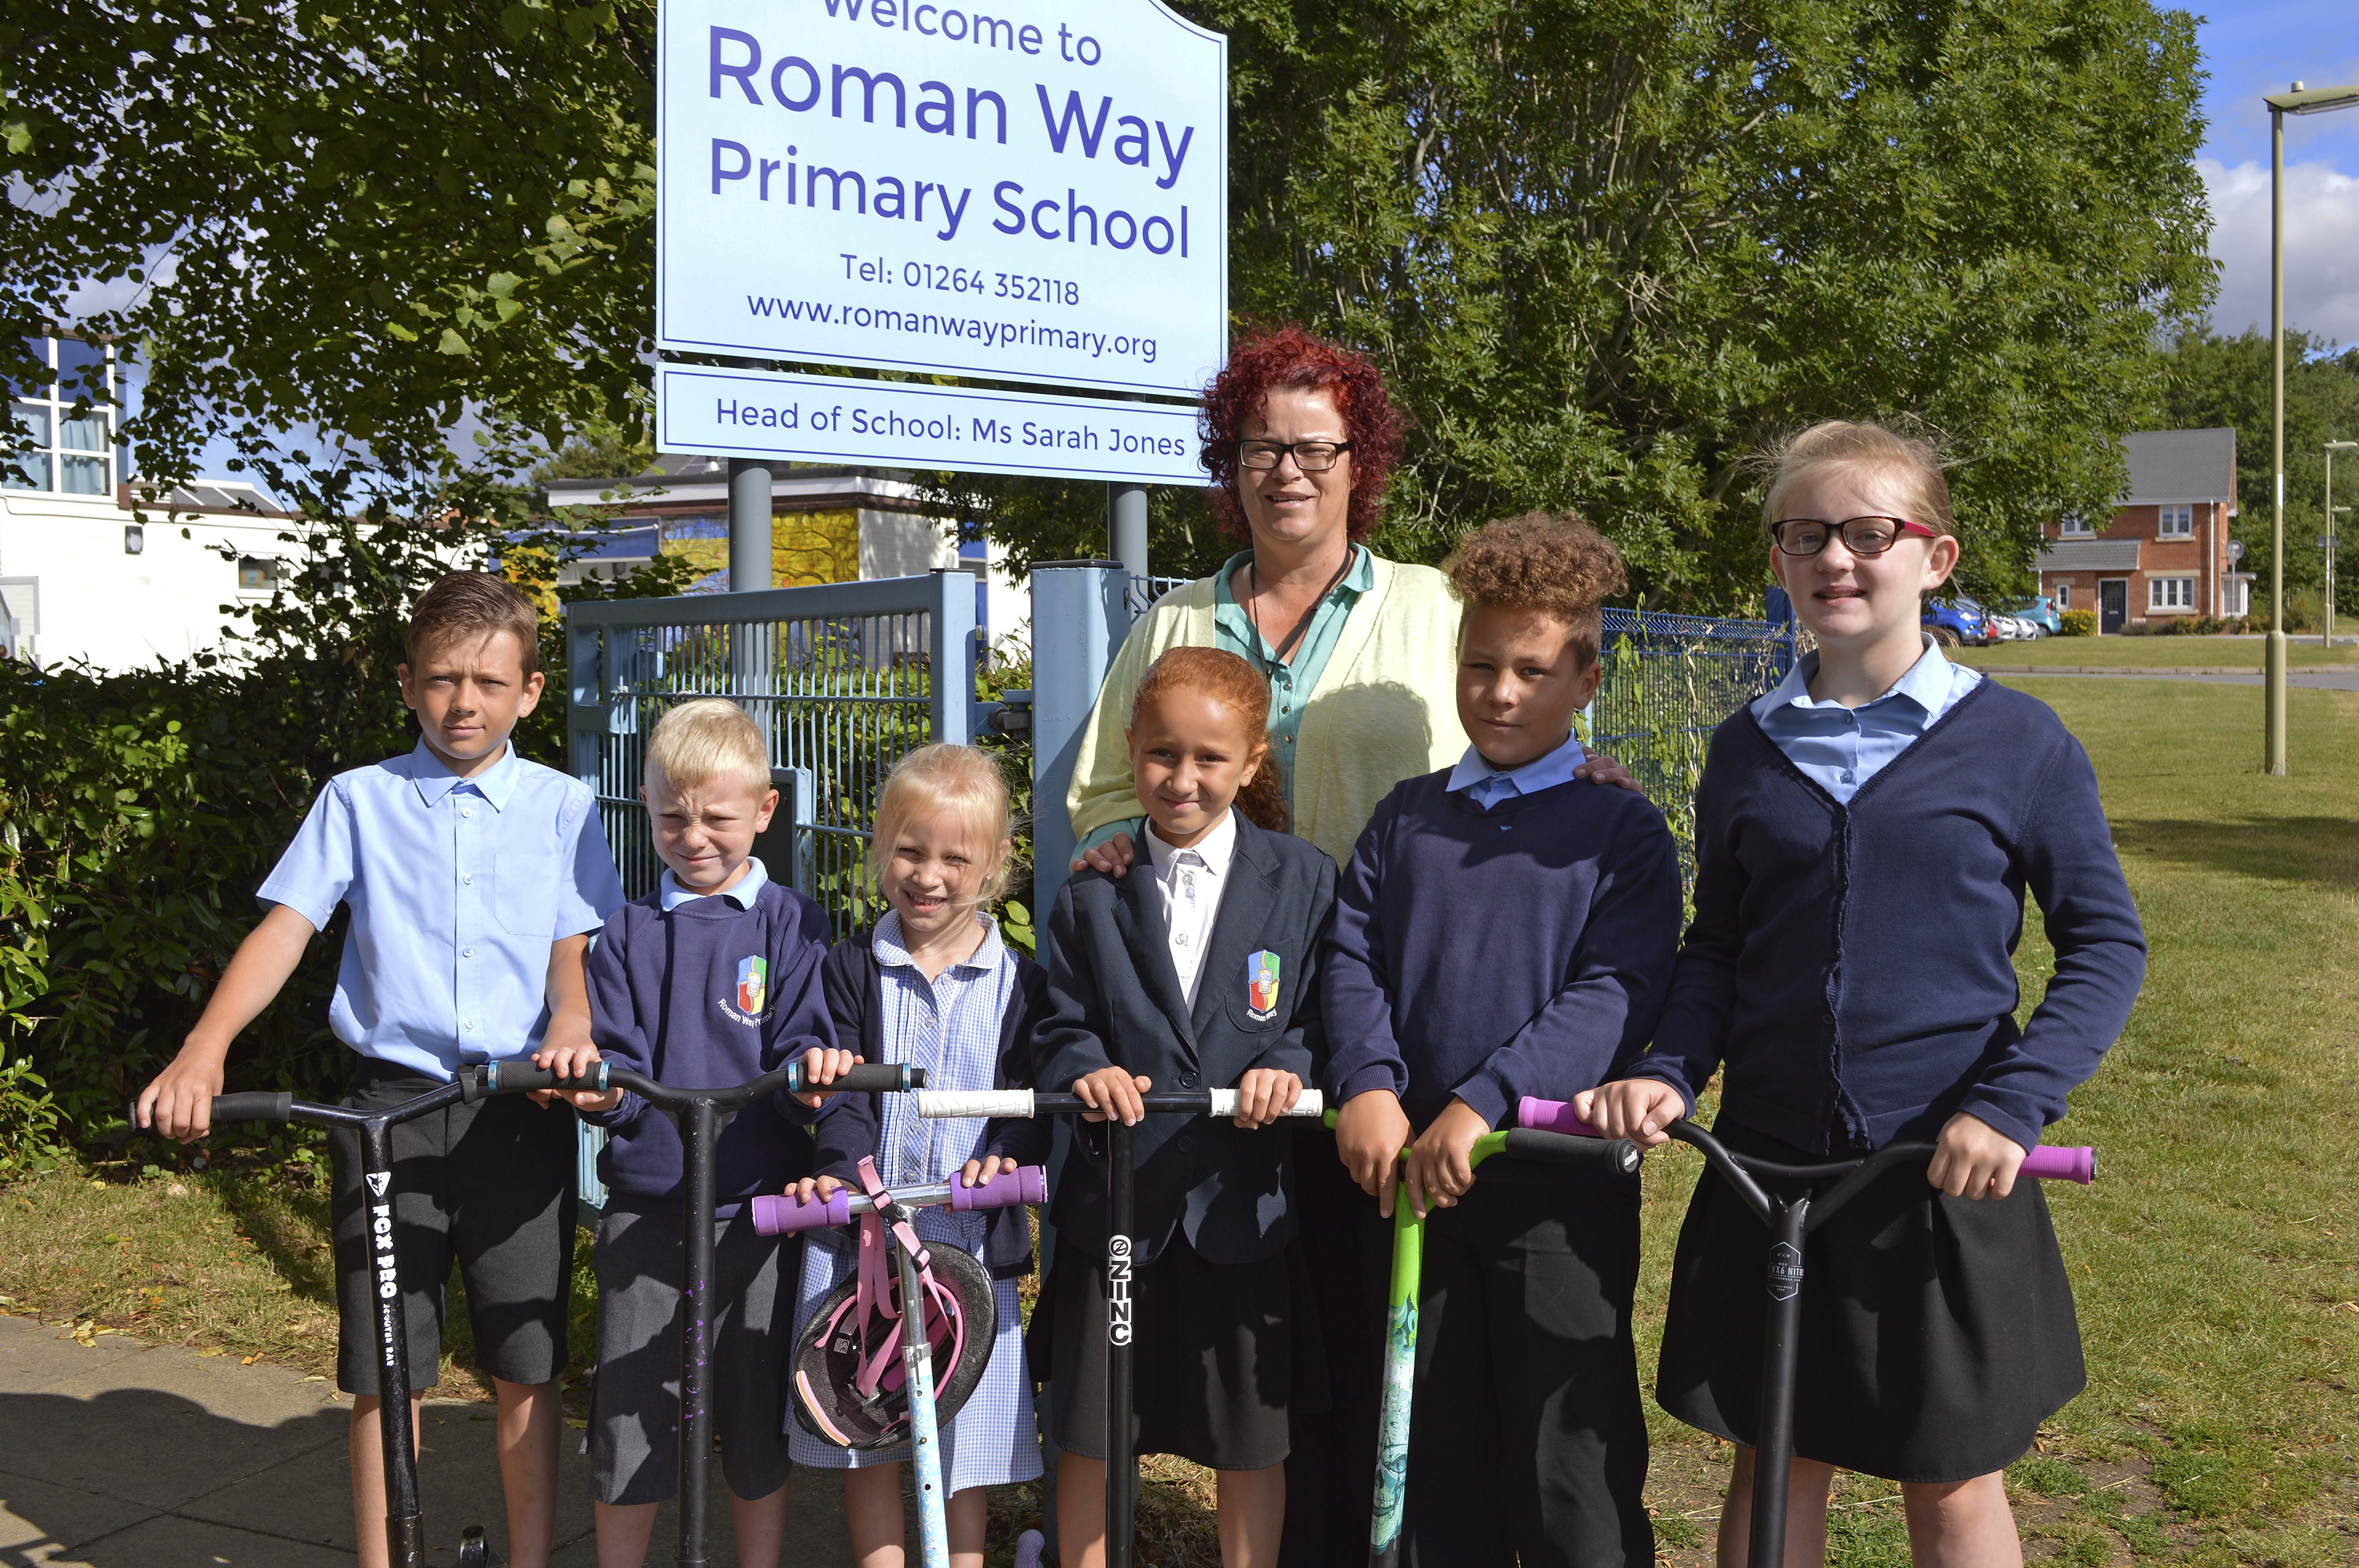 Taylor Wimpey  The Chariots Saxon Heights  Roman Way Primary School Do